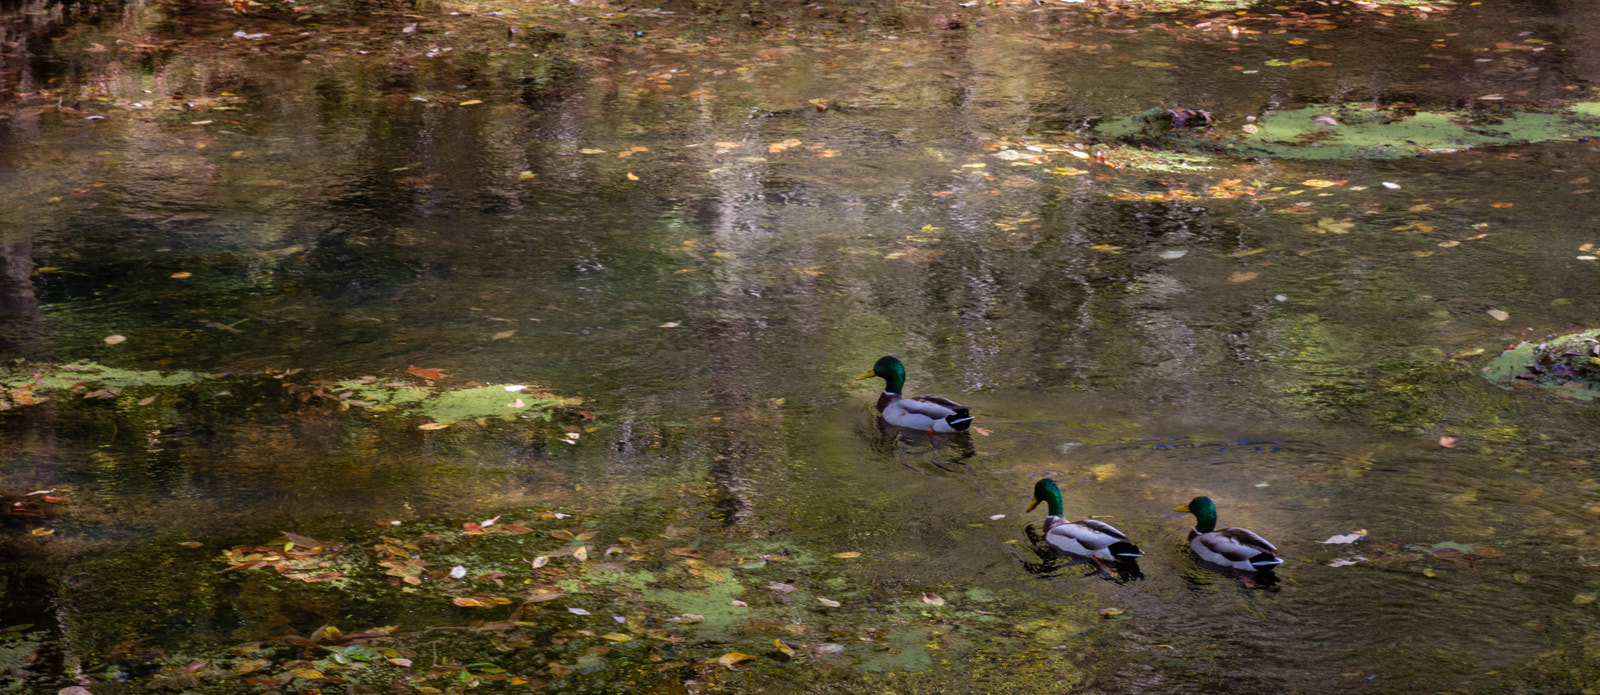 Photograph Ducks on the C&O canal by Mark Samols on 500px